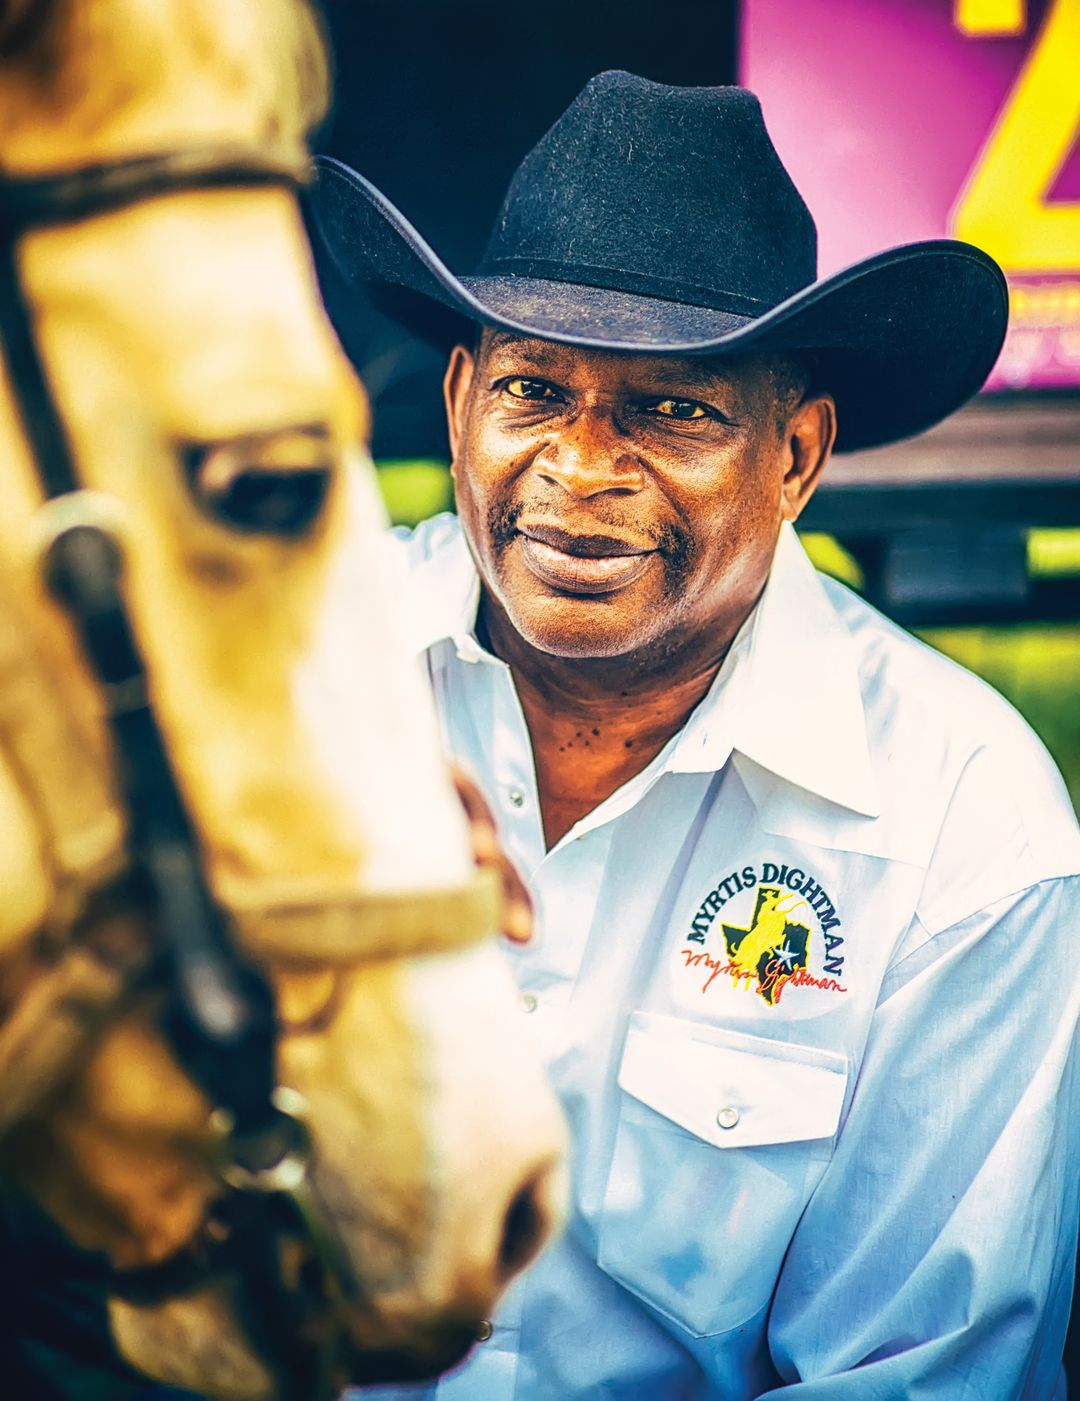 Bayougraphy profile myrtis dightman trail rider rodeo houston spchiu